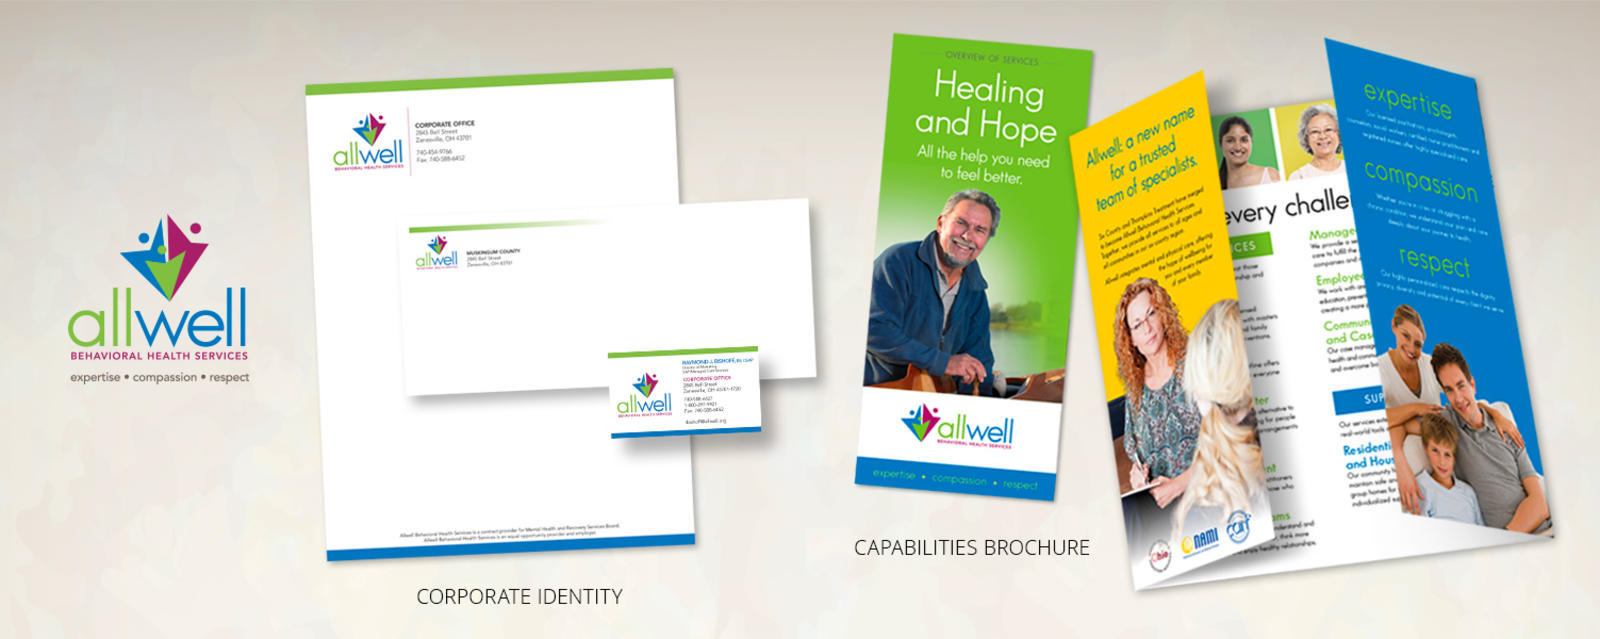 Corporate ID and Capabilities Brochure